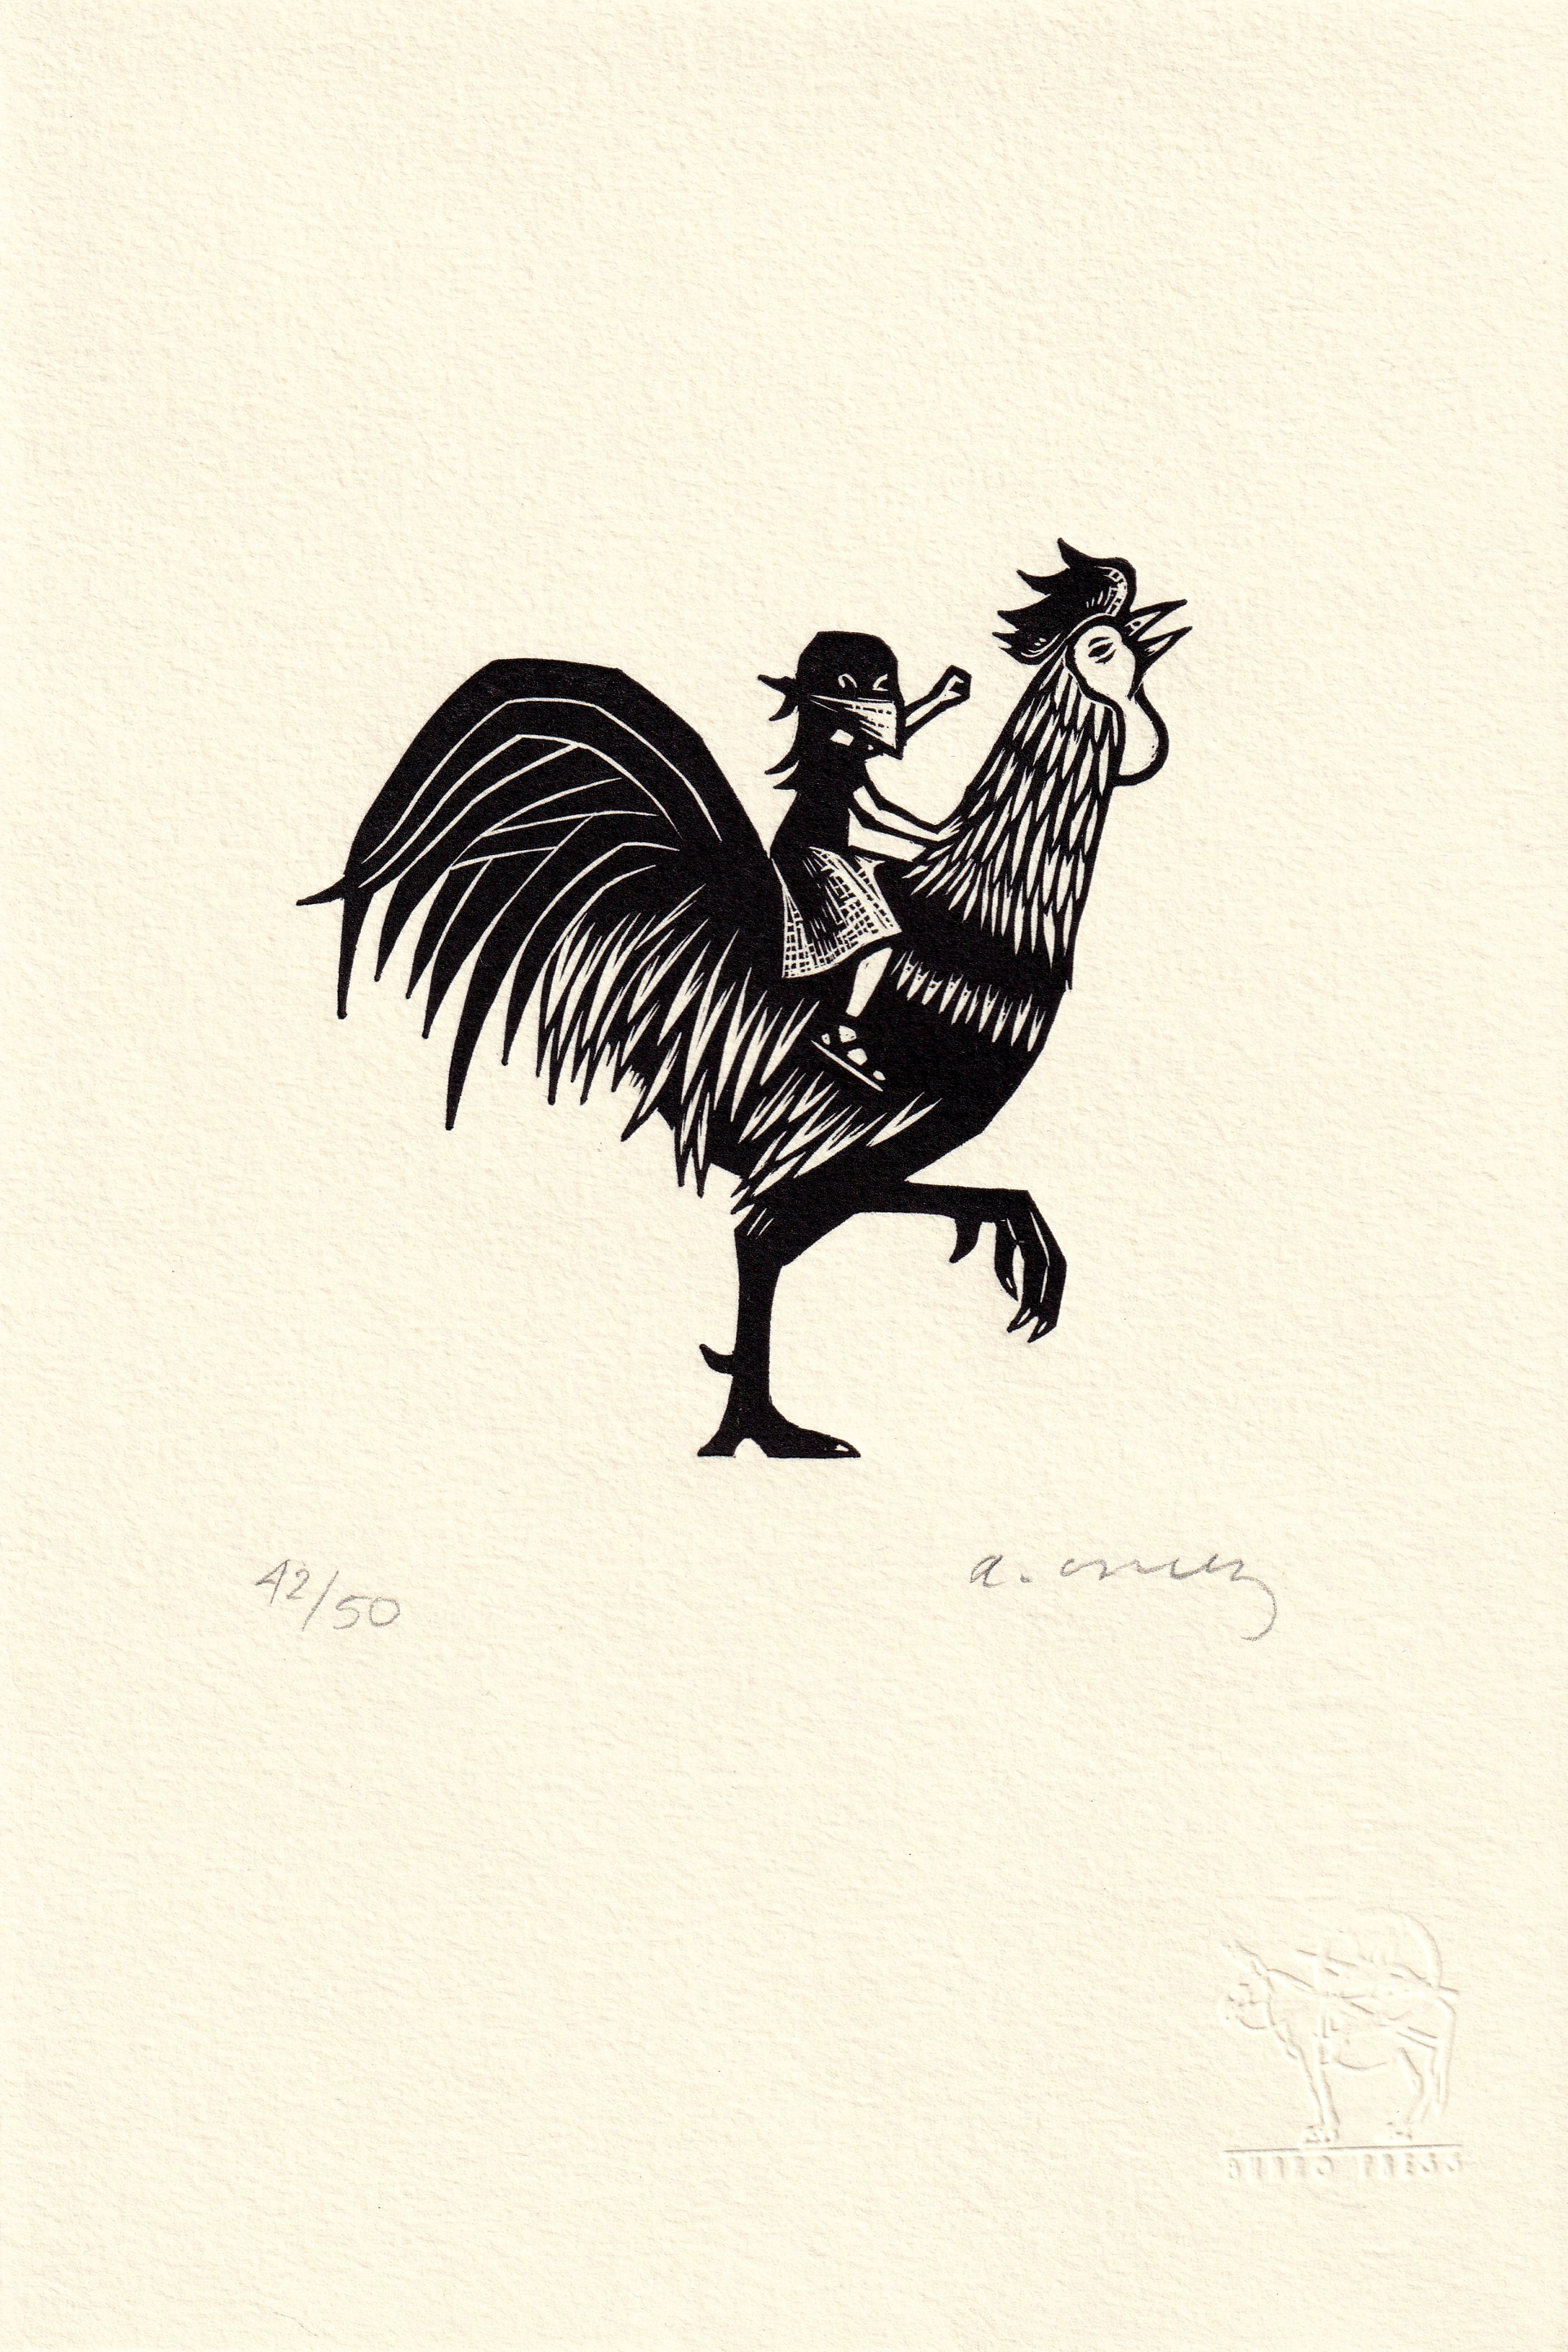 Untitled (Gallo) by Alberto Cruz